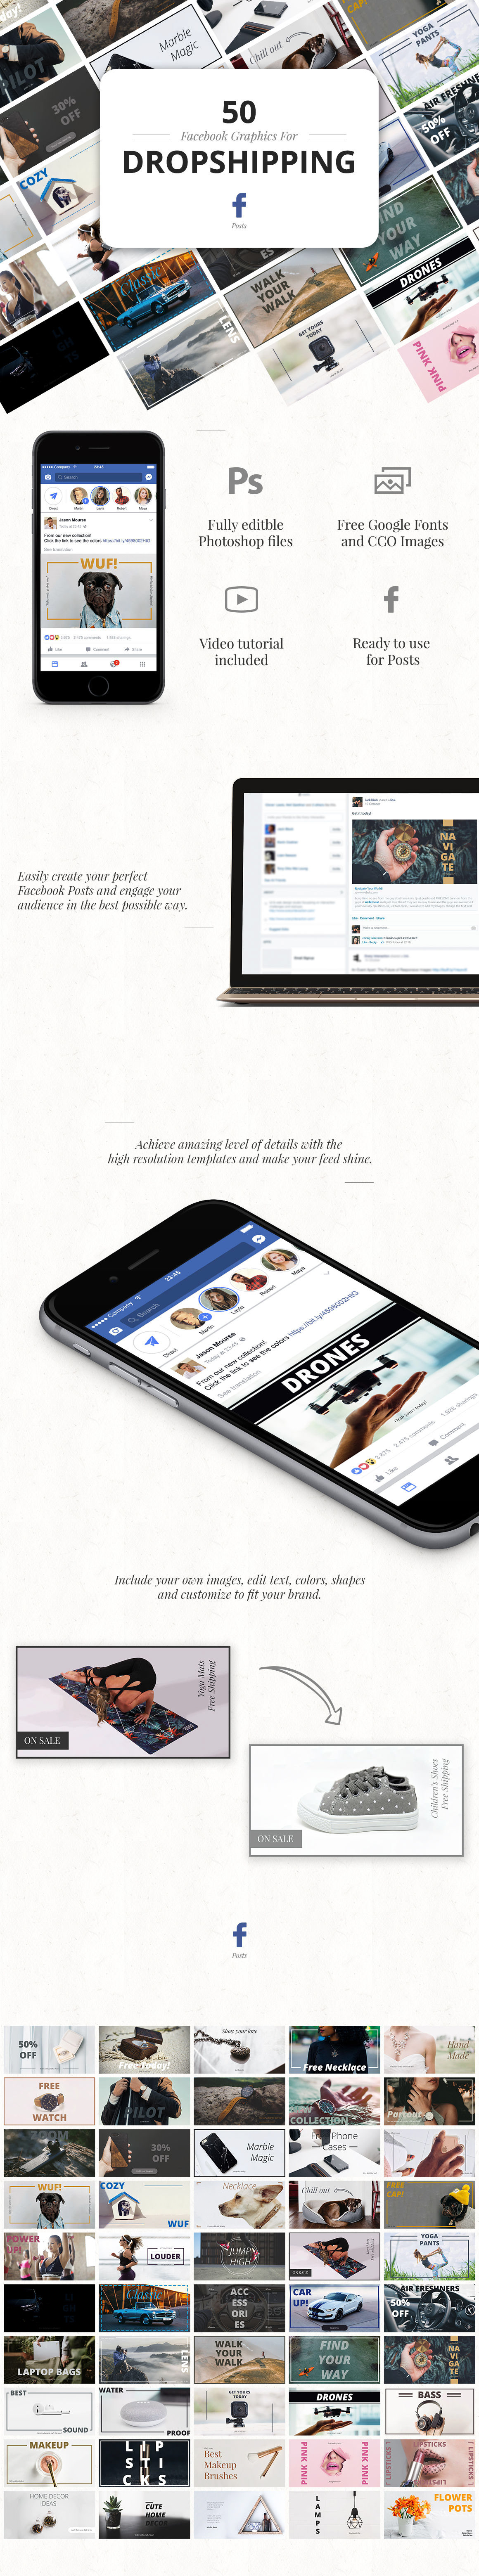 facebook dropship graphics dropshipping marketing   INFLUENCER promotion graphic facebook graphic facebook psd template Facebook Ad